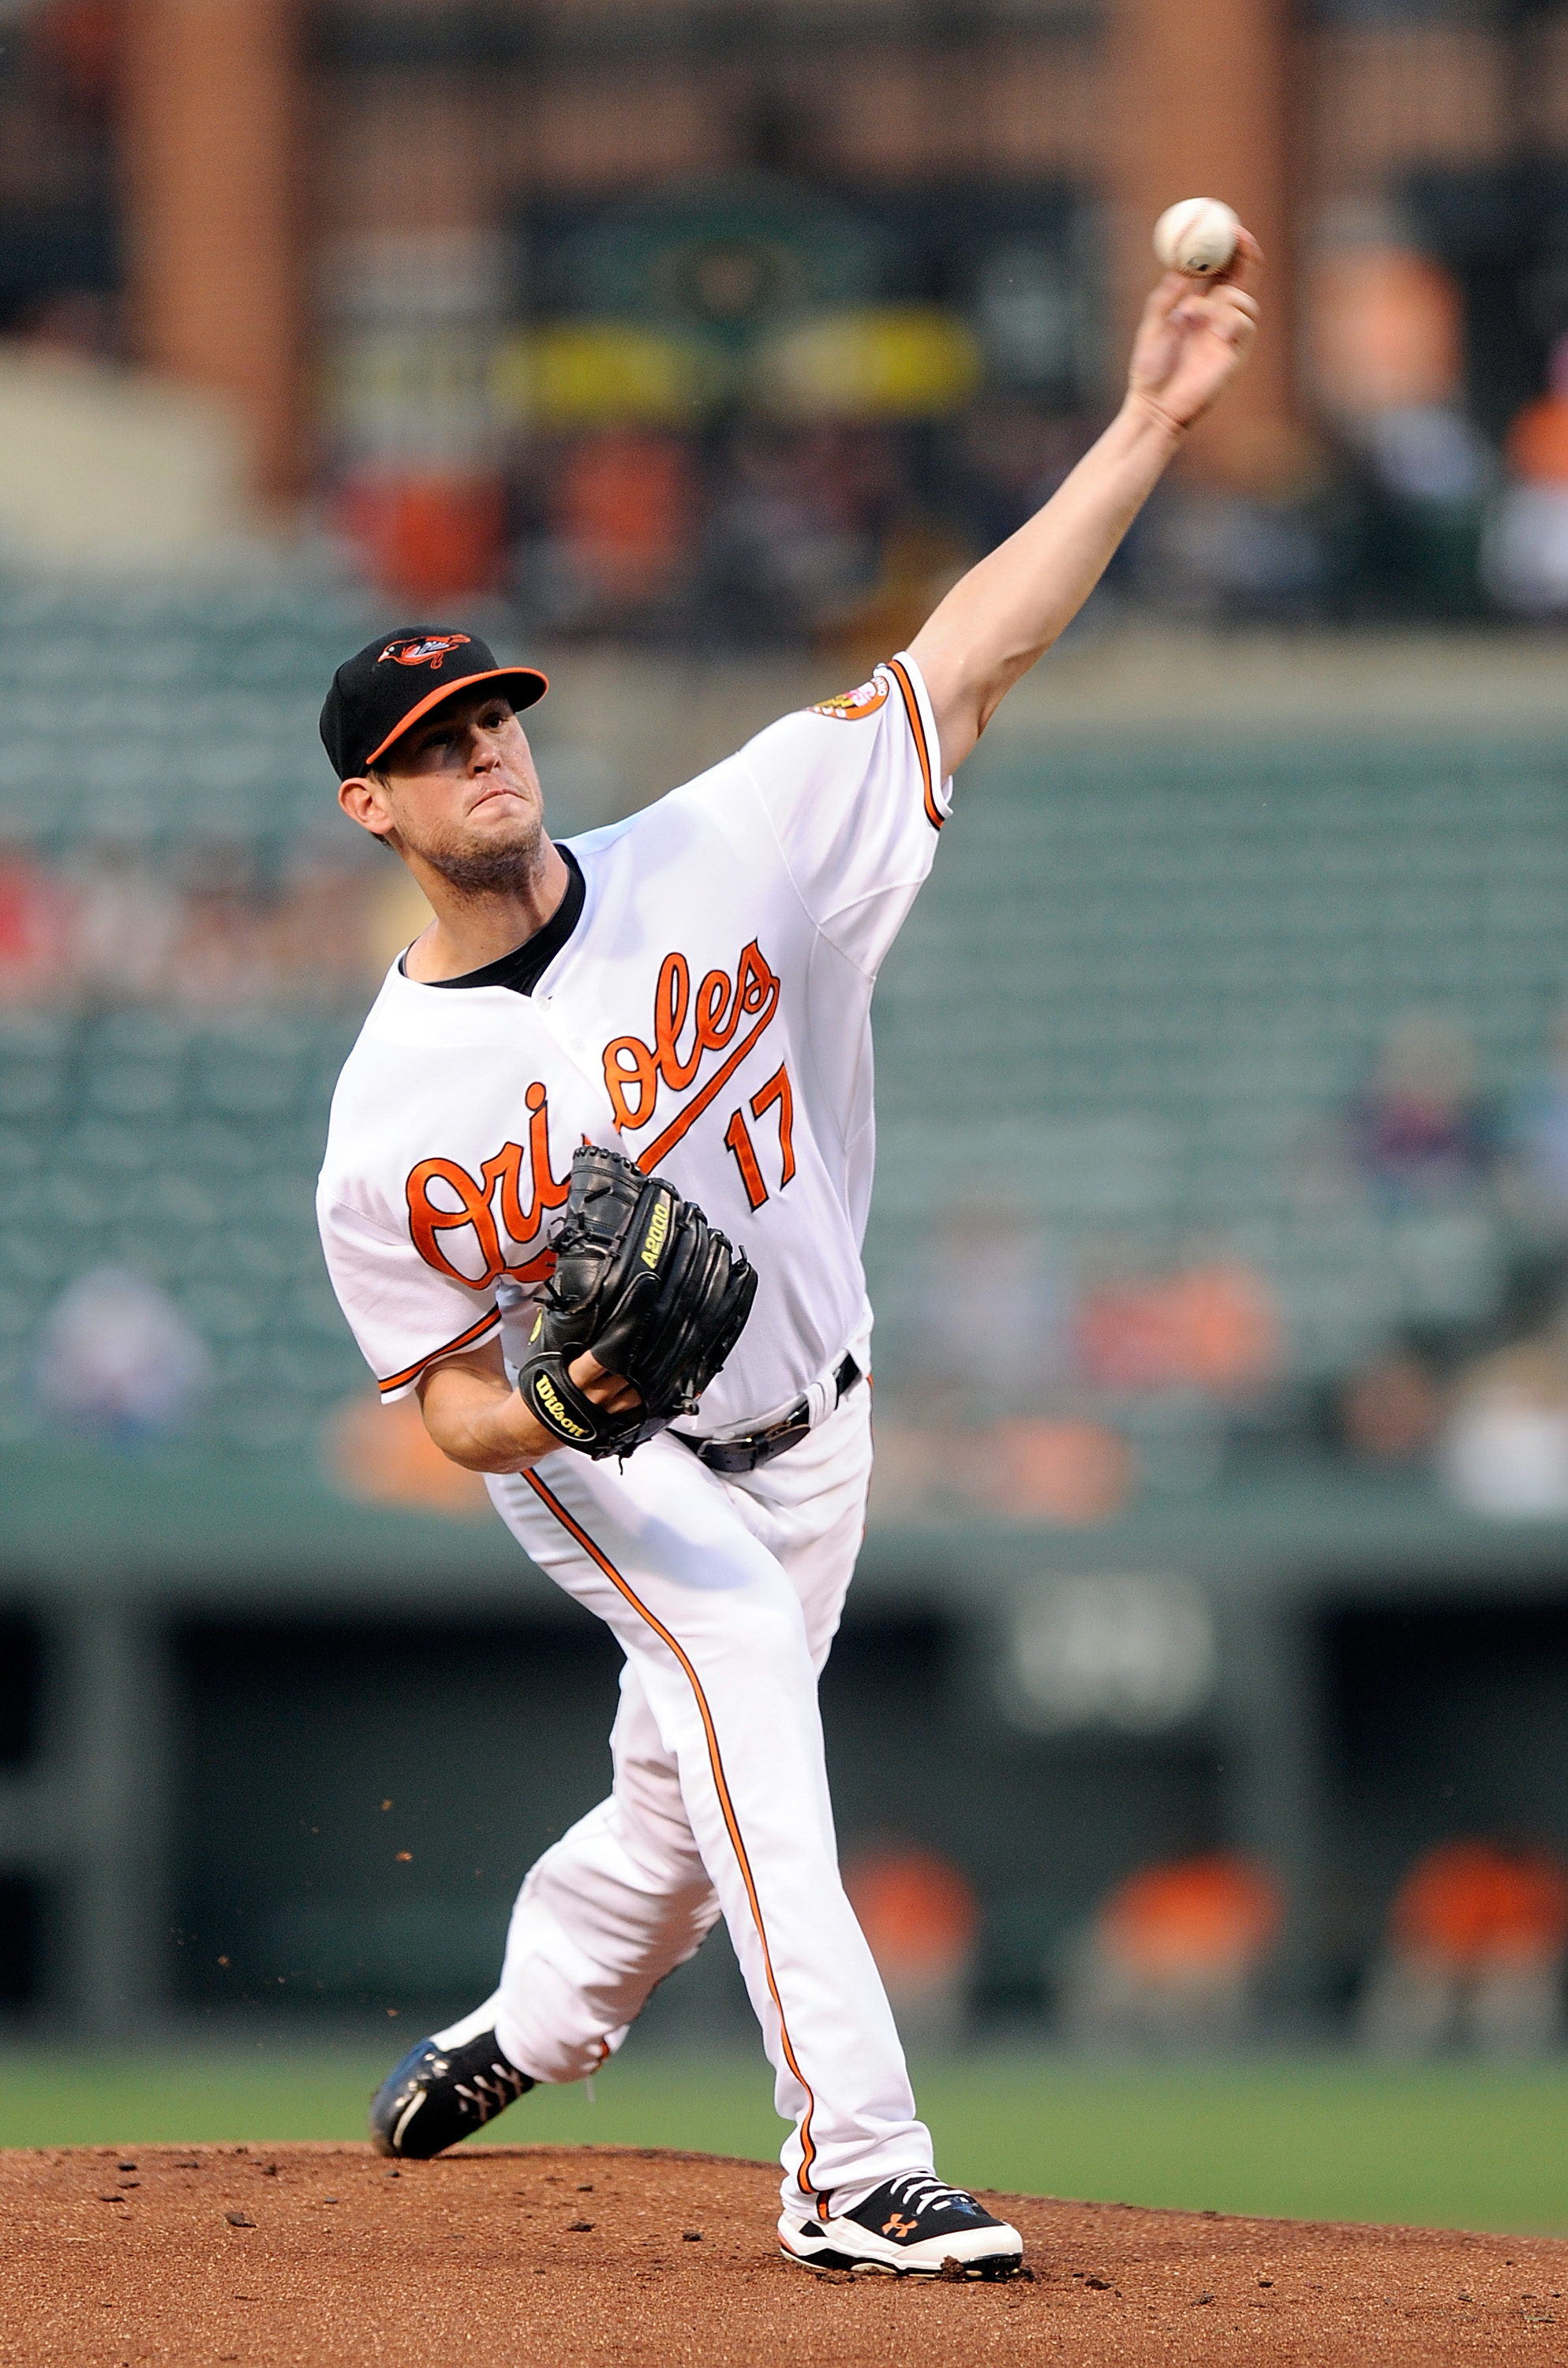 BALTIMORE - AUGUST 31:  Brian Matusz #17 of the Baltimore Orioles pitches against the Boston Red Sox at Camden Yards on August 31, 2010 in Baltimore, Maryland.  (Photo by Greg Fiume/Getty Images)